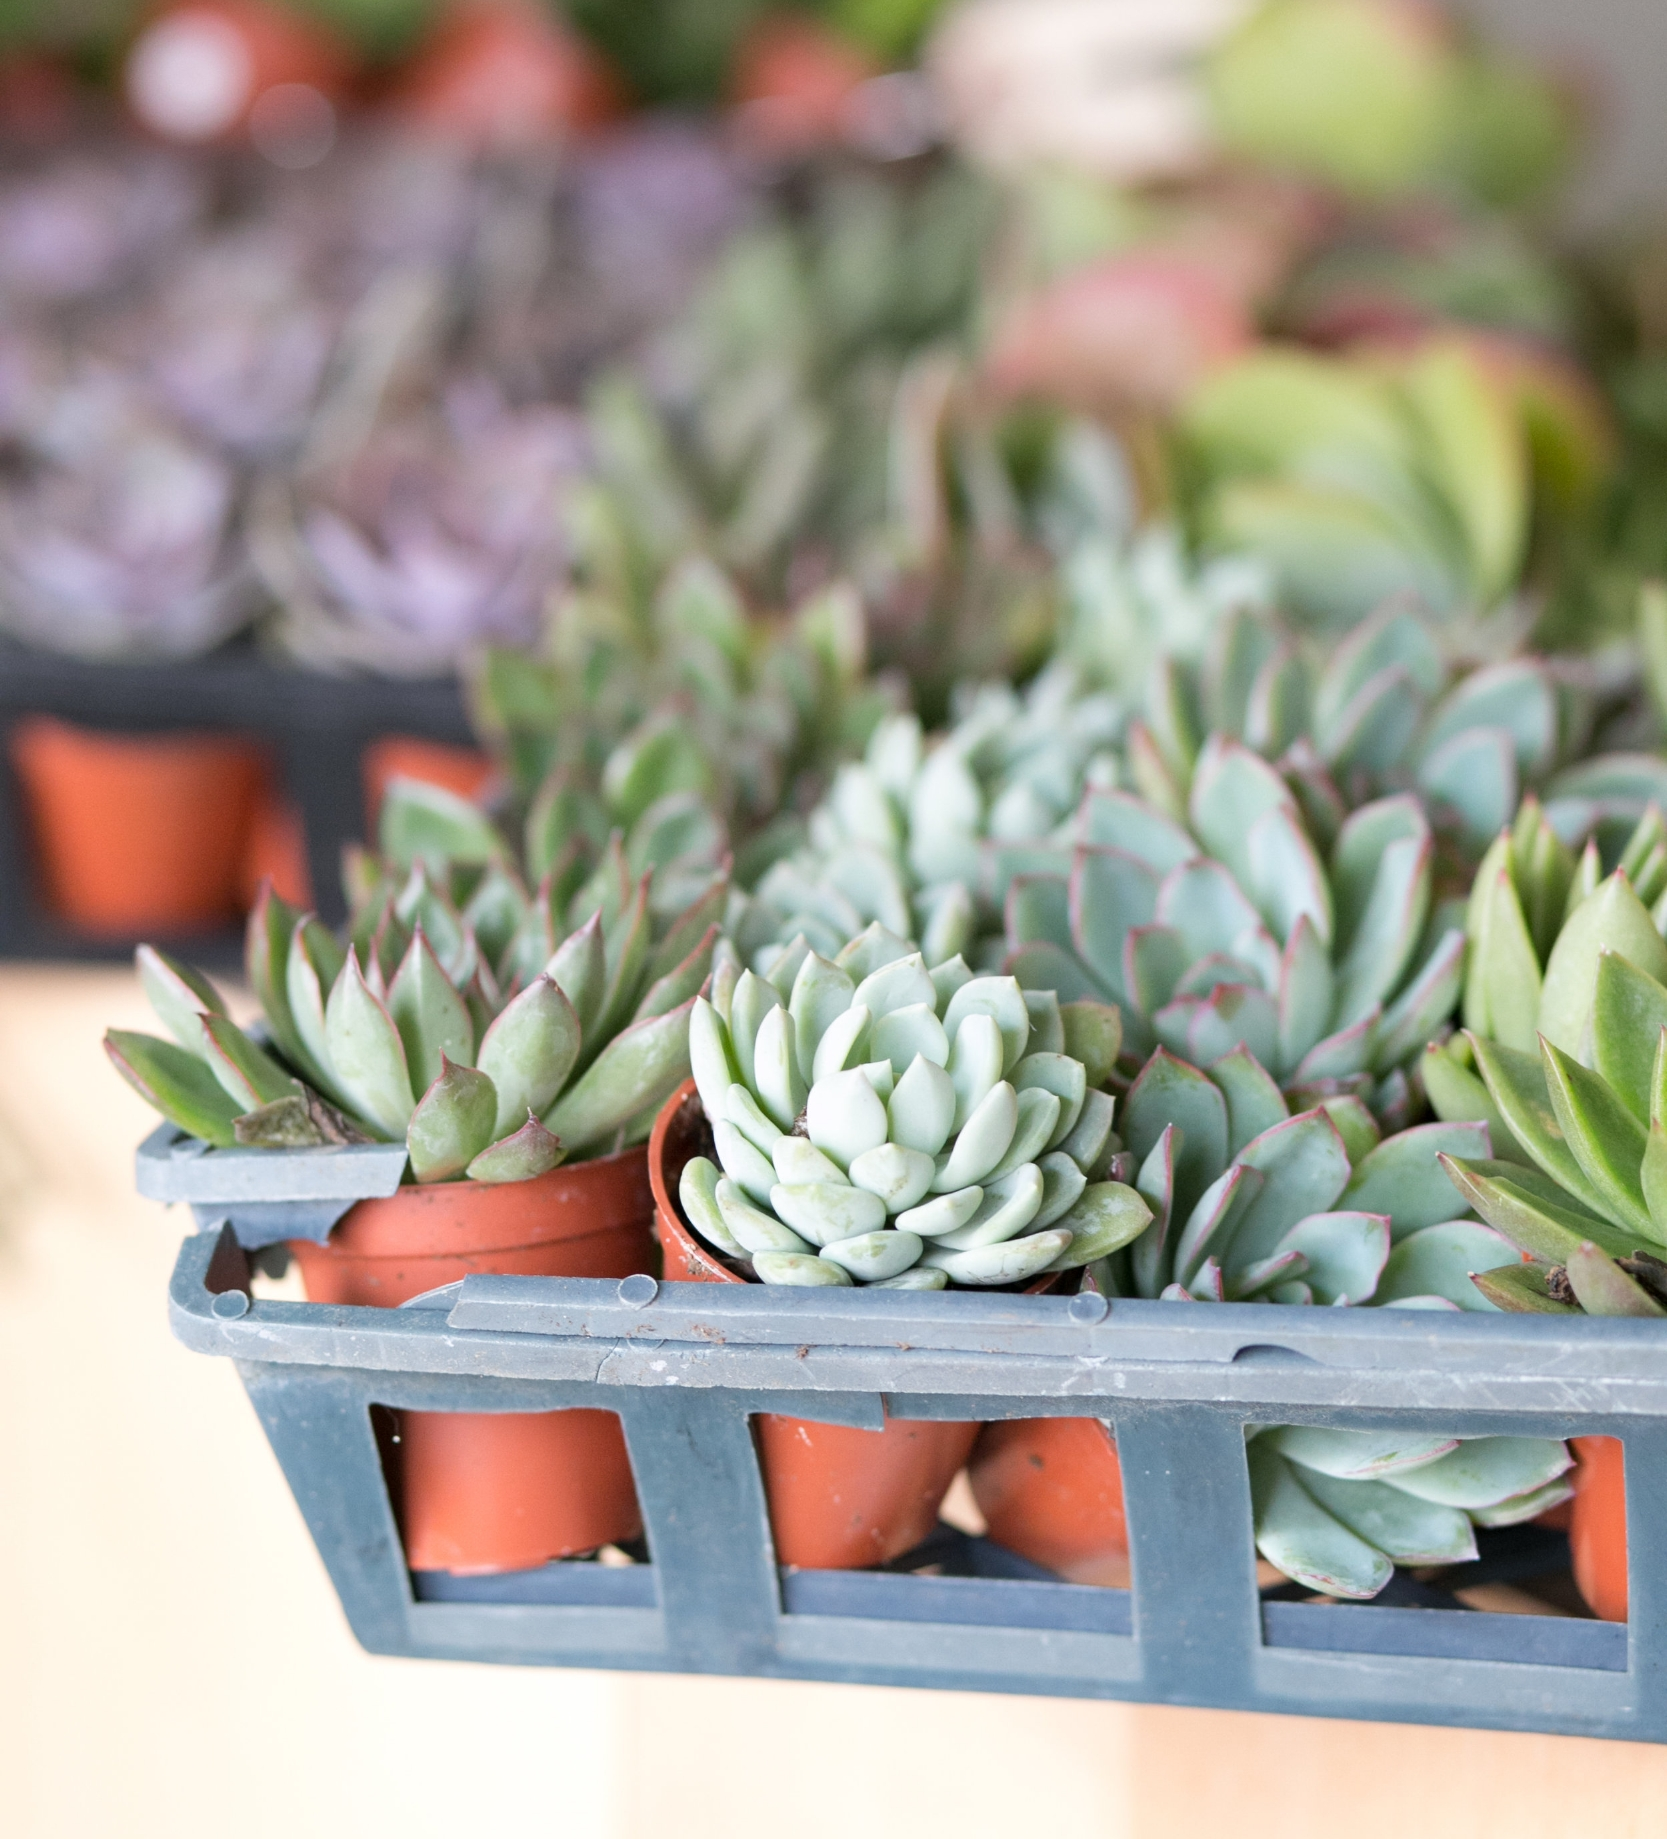 Applying liquid fertilizer to succulent leaves can cause rot and other problems.  Be sure to apply fertilizer only to their soil, as indicated by the instructions on the bottle.